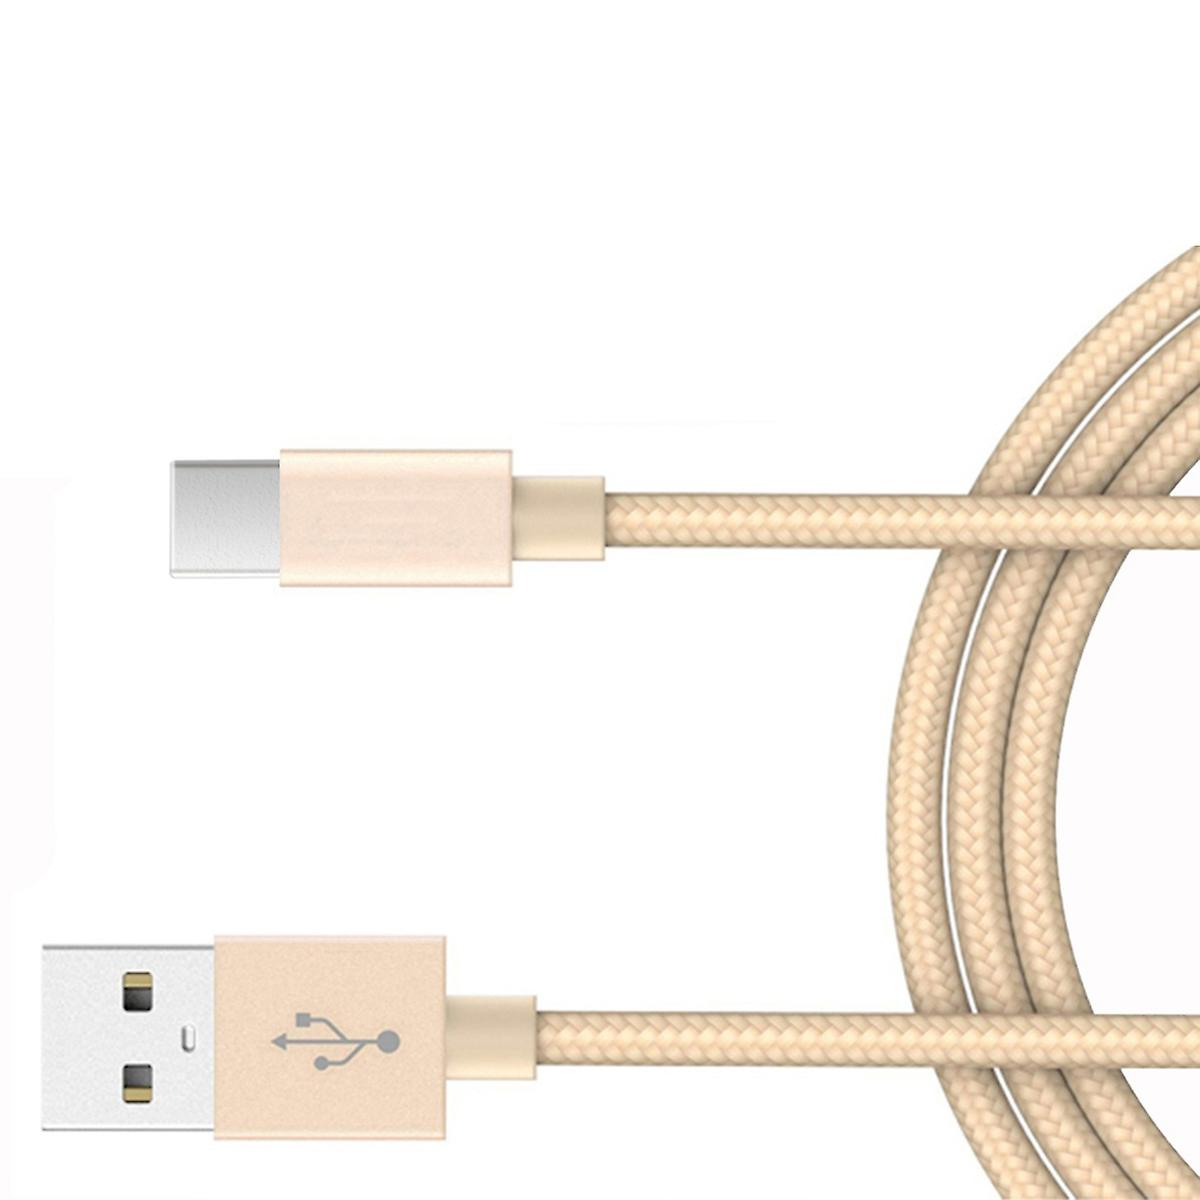 2M Huawei USB C Charging Cable - Gold